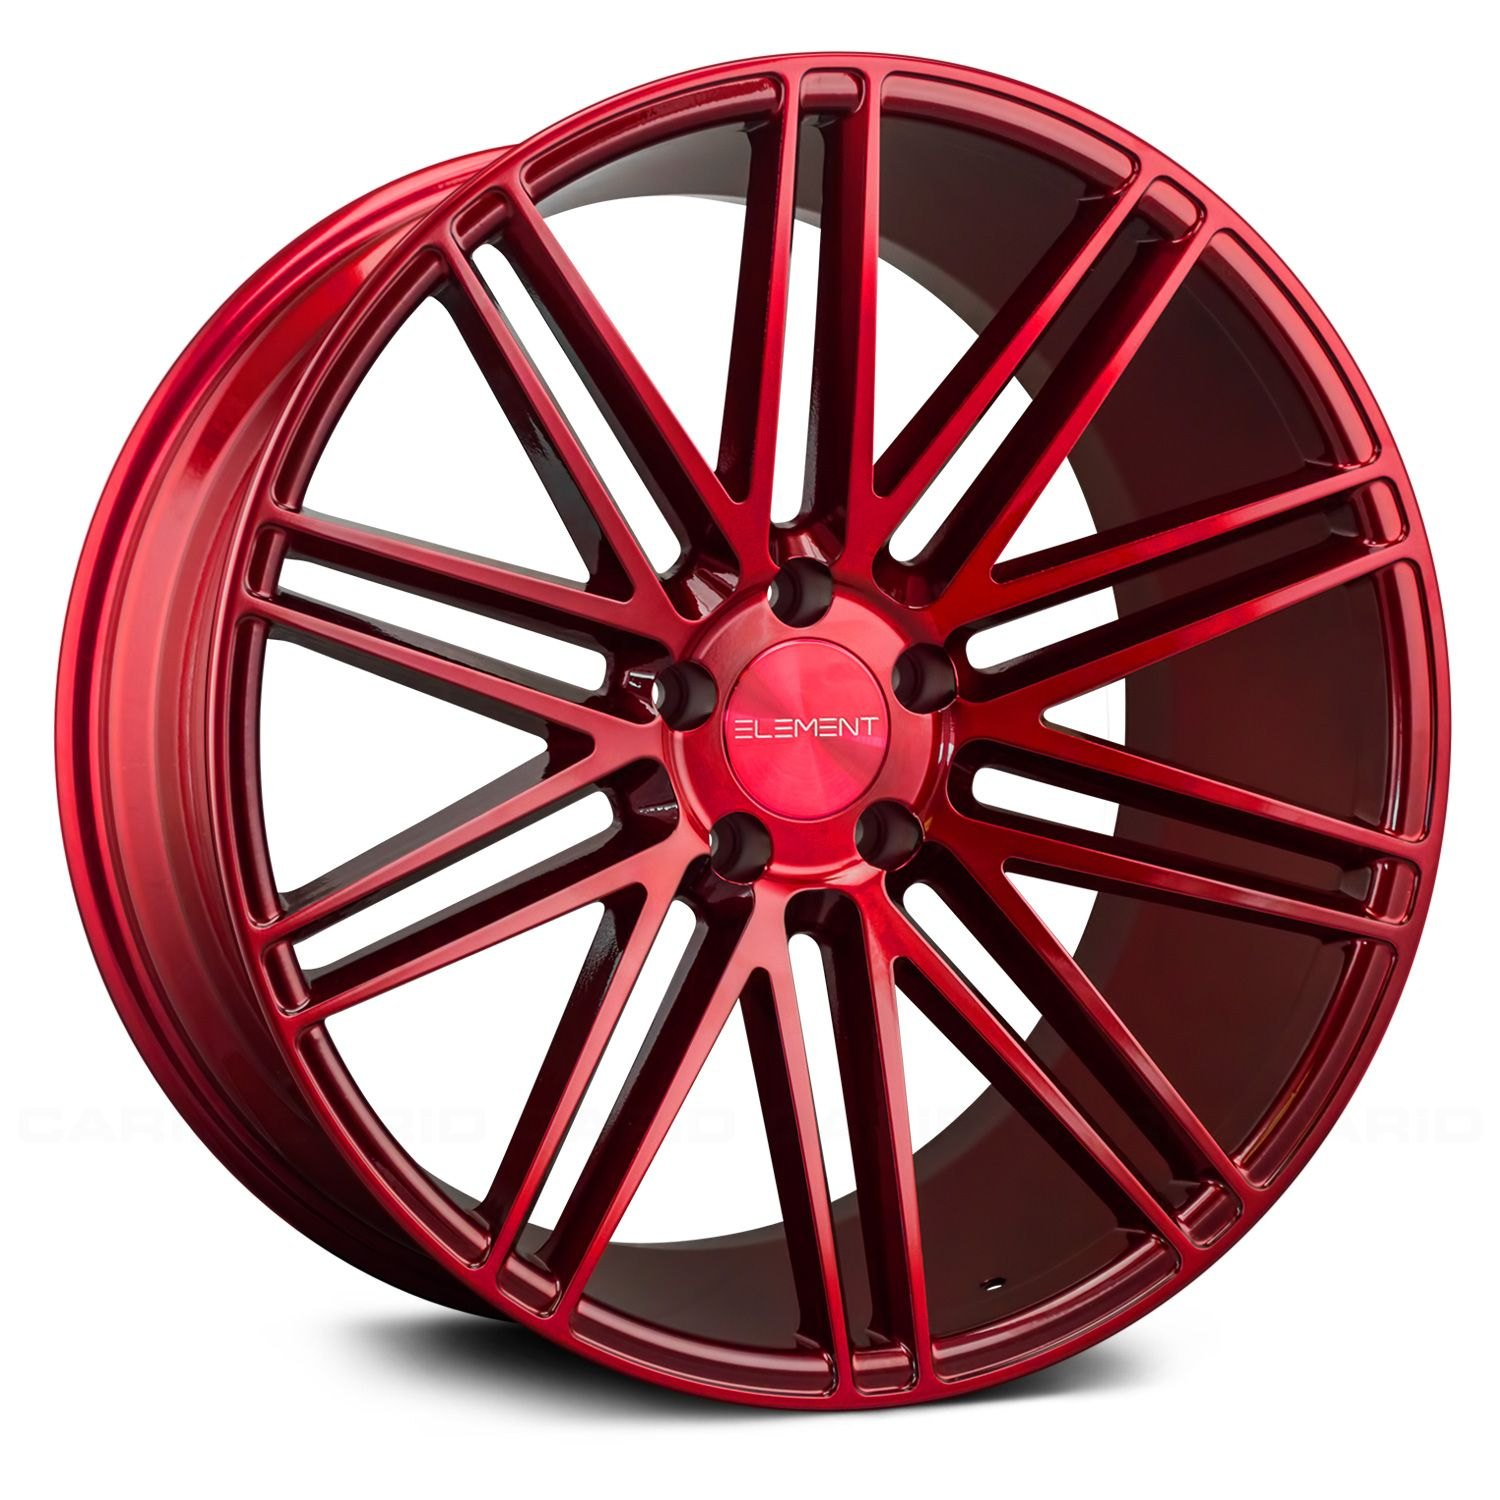 About Element Wheels